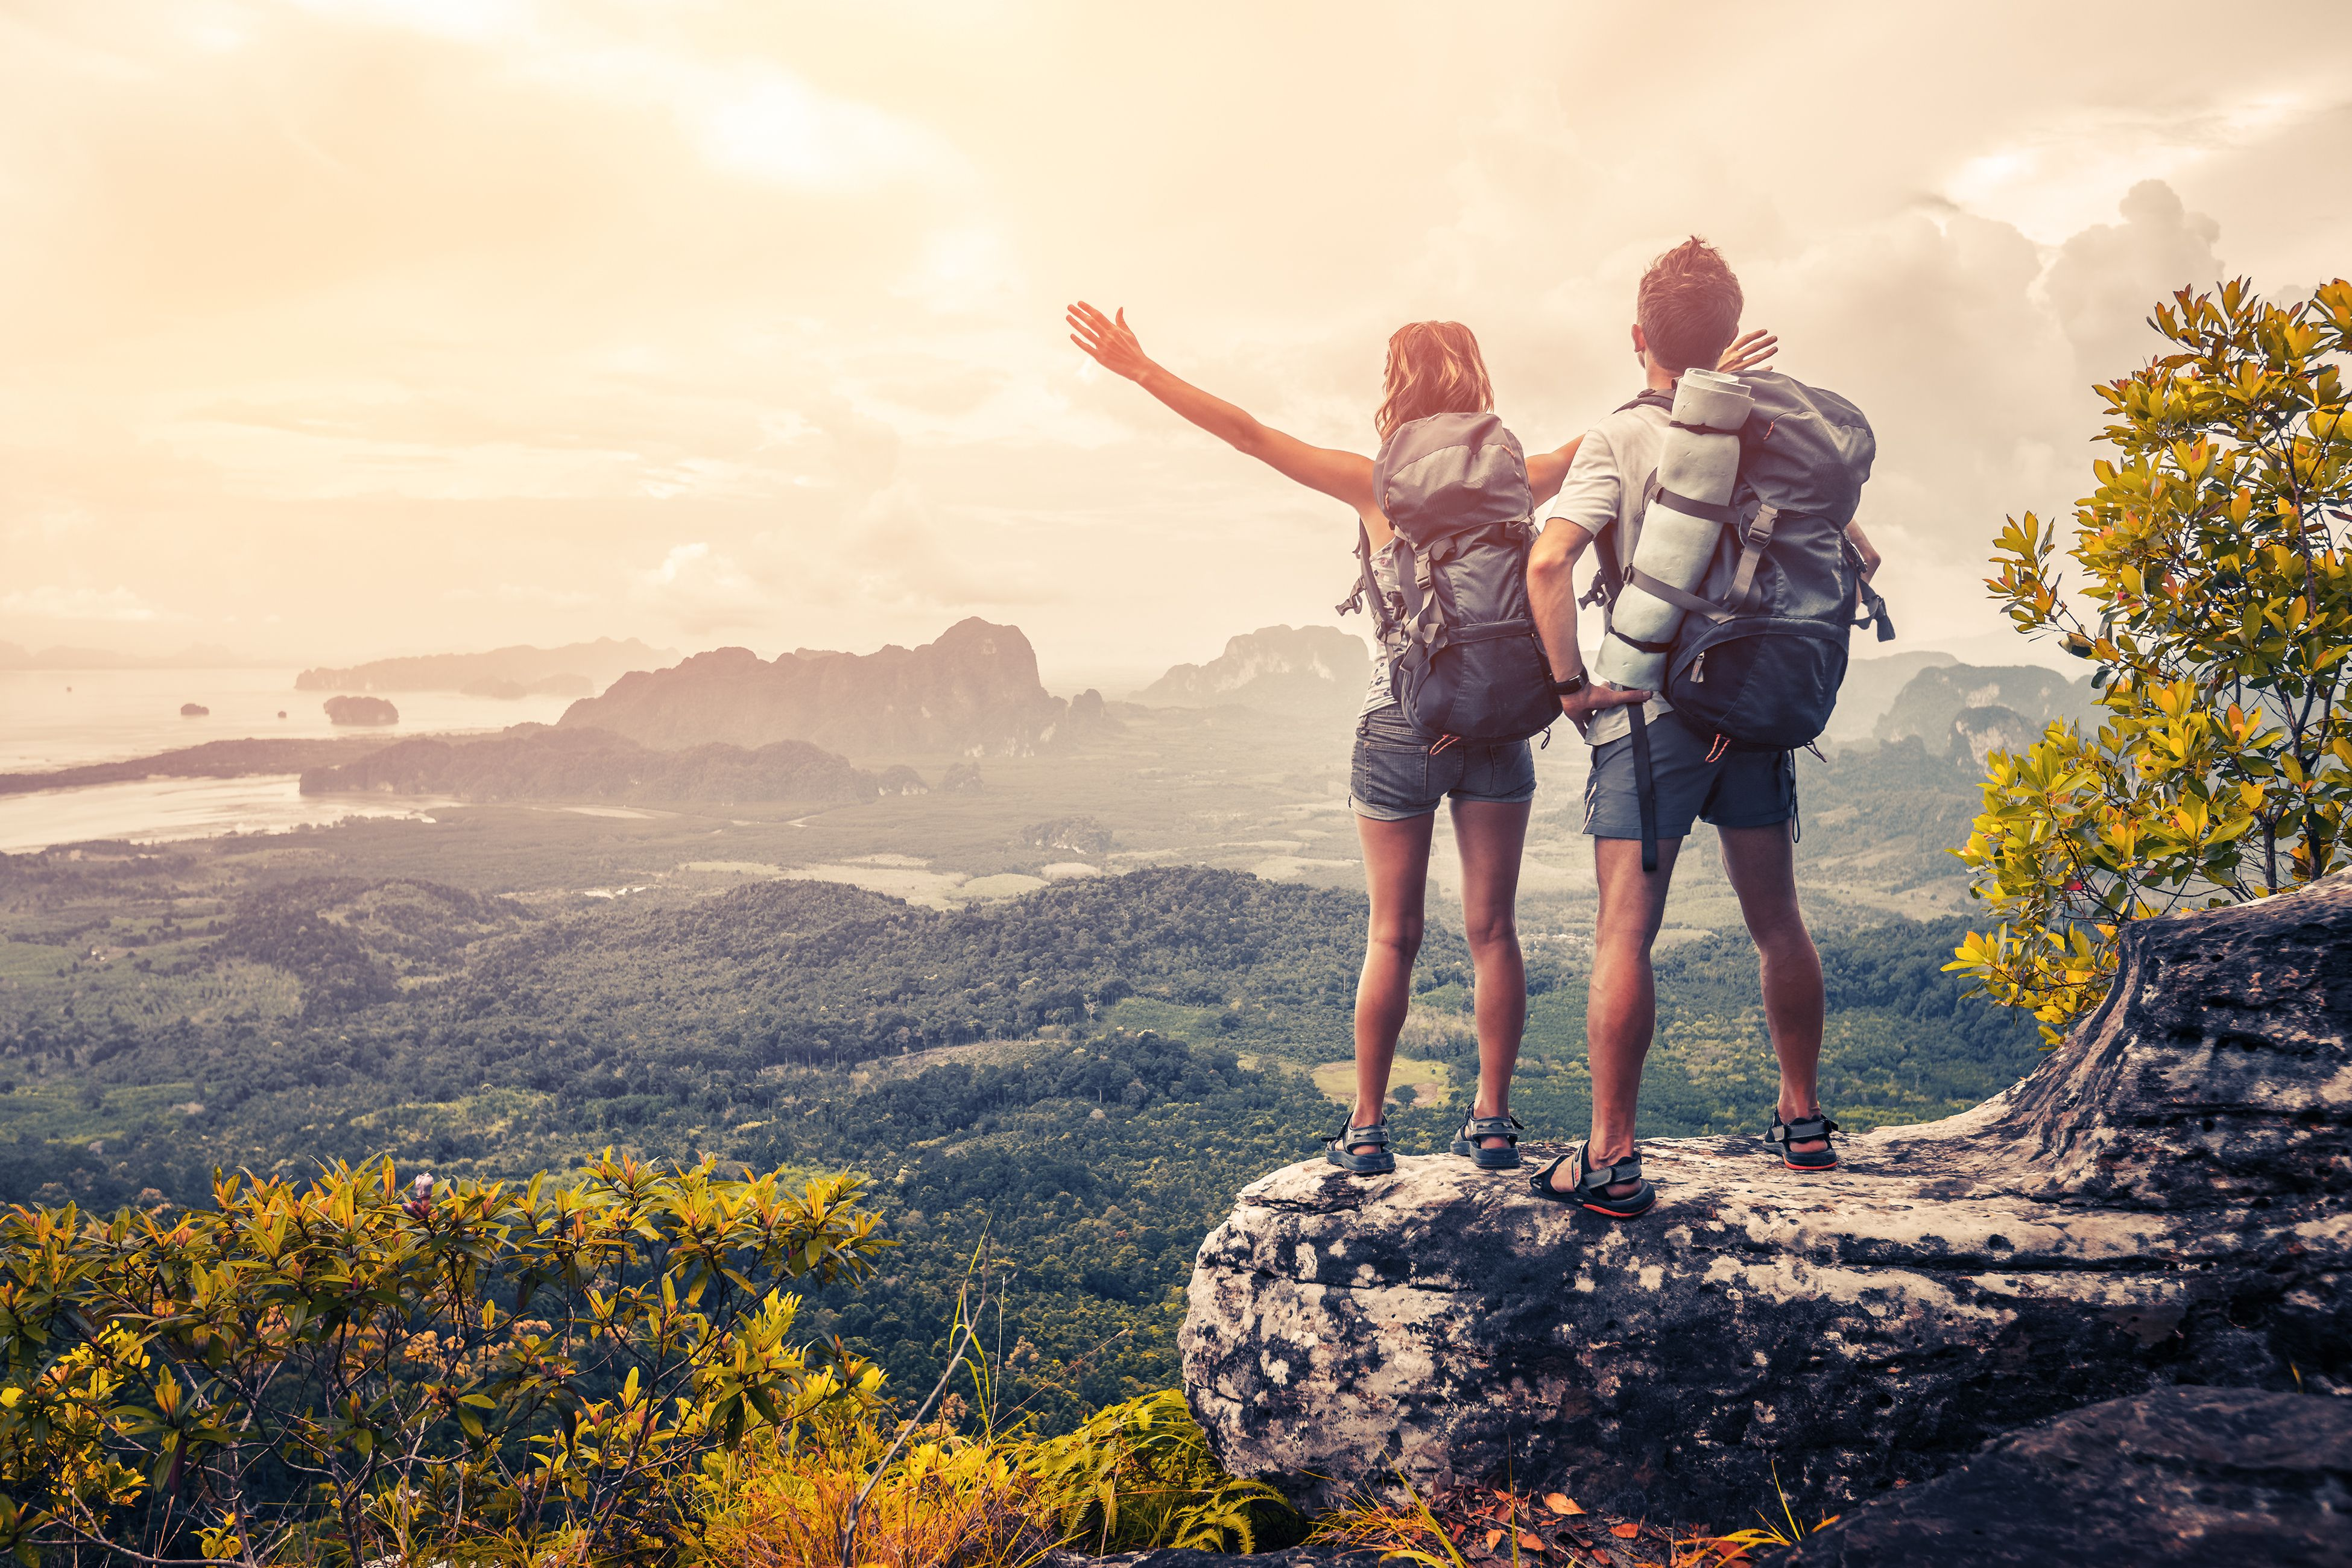 A man and a woman on a hiking trip.   Source: Shutterstock